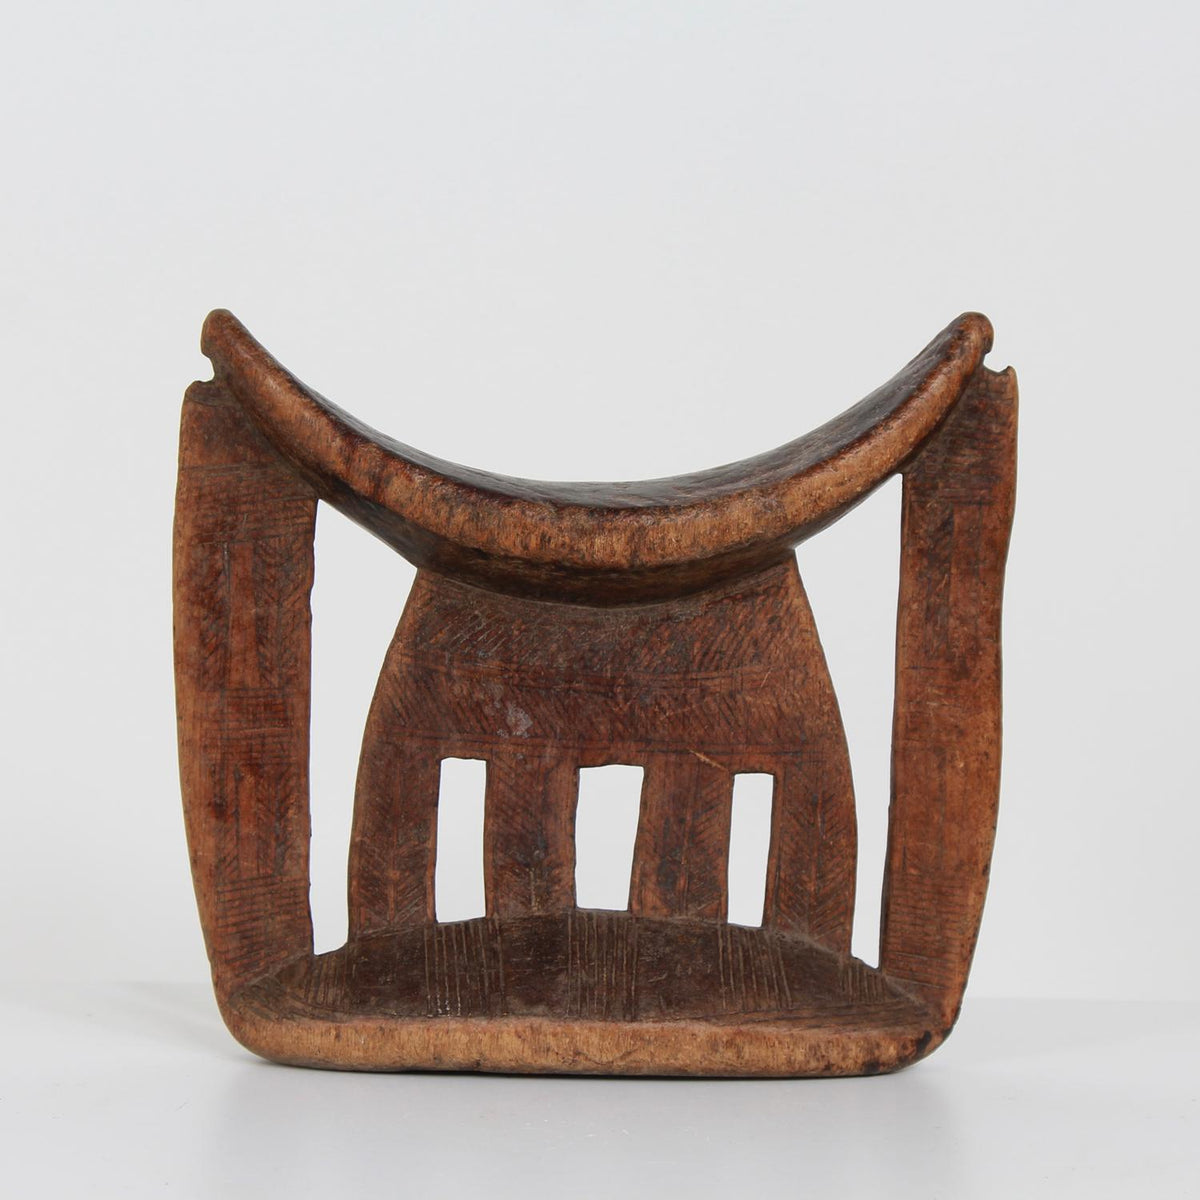 African Tribal Headrest in Carved Wood from Ethiopia